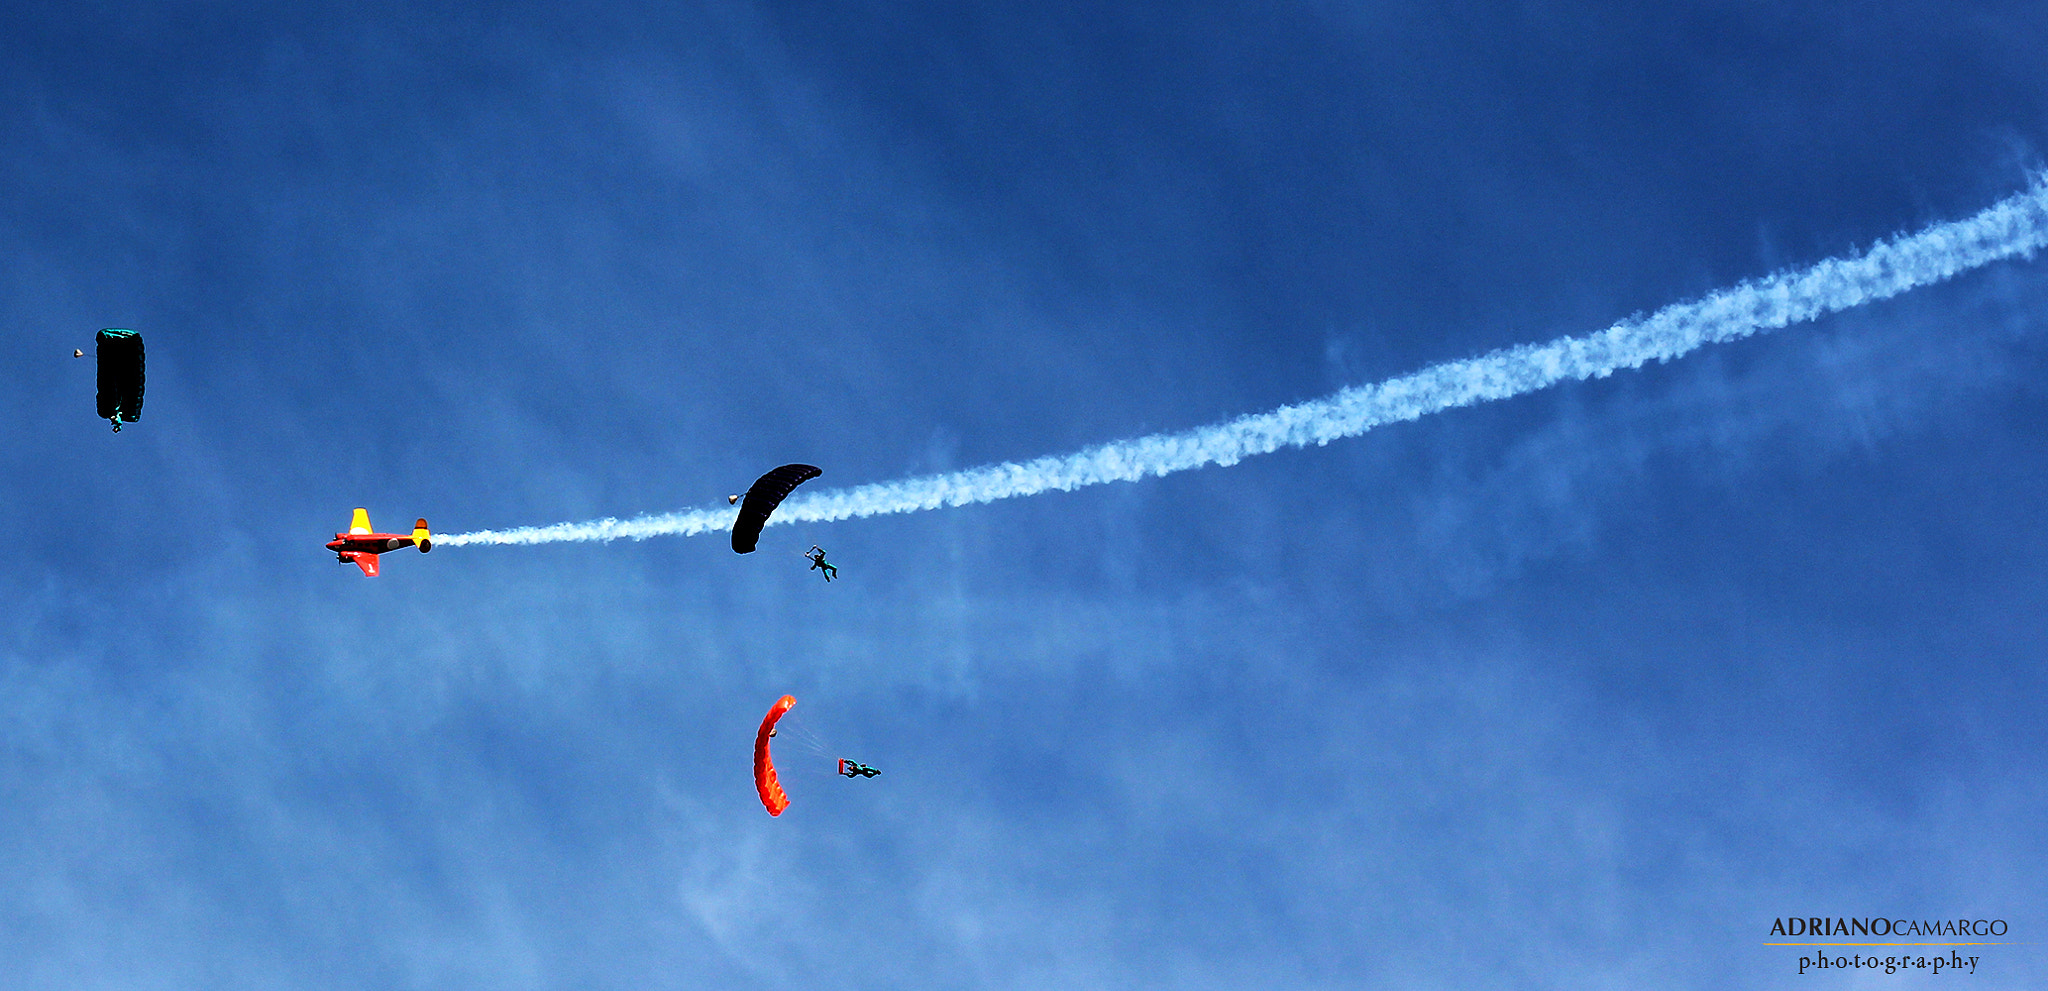 Photograph Three parachutes and a plane by José Adriano Camargo on 500px